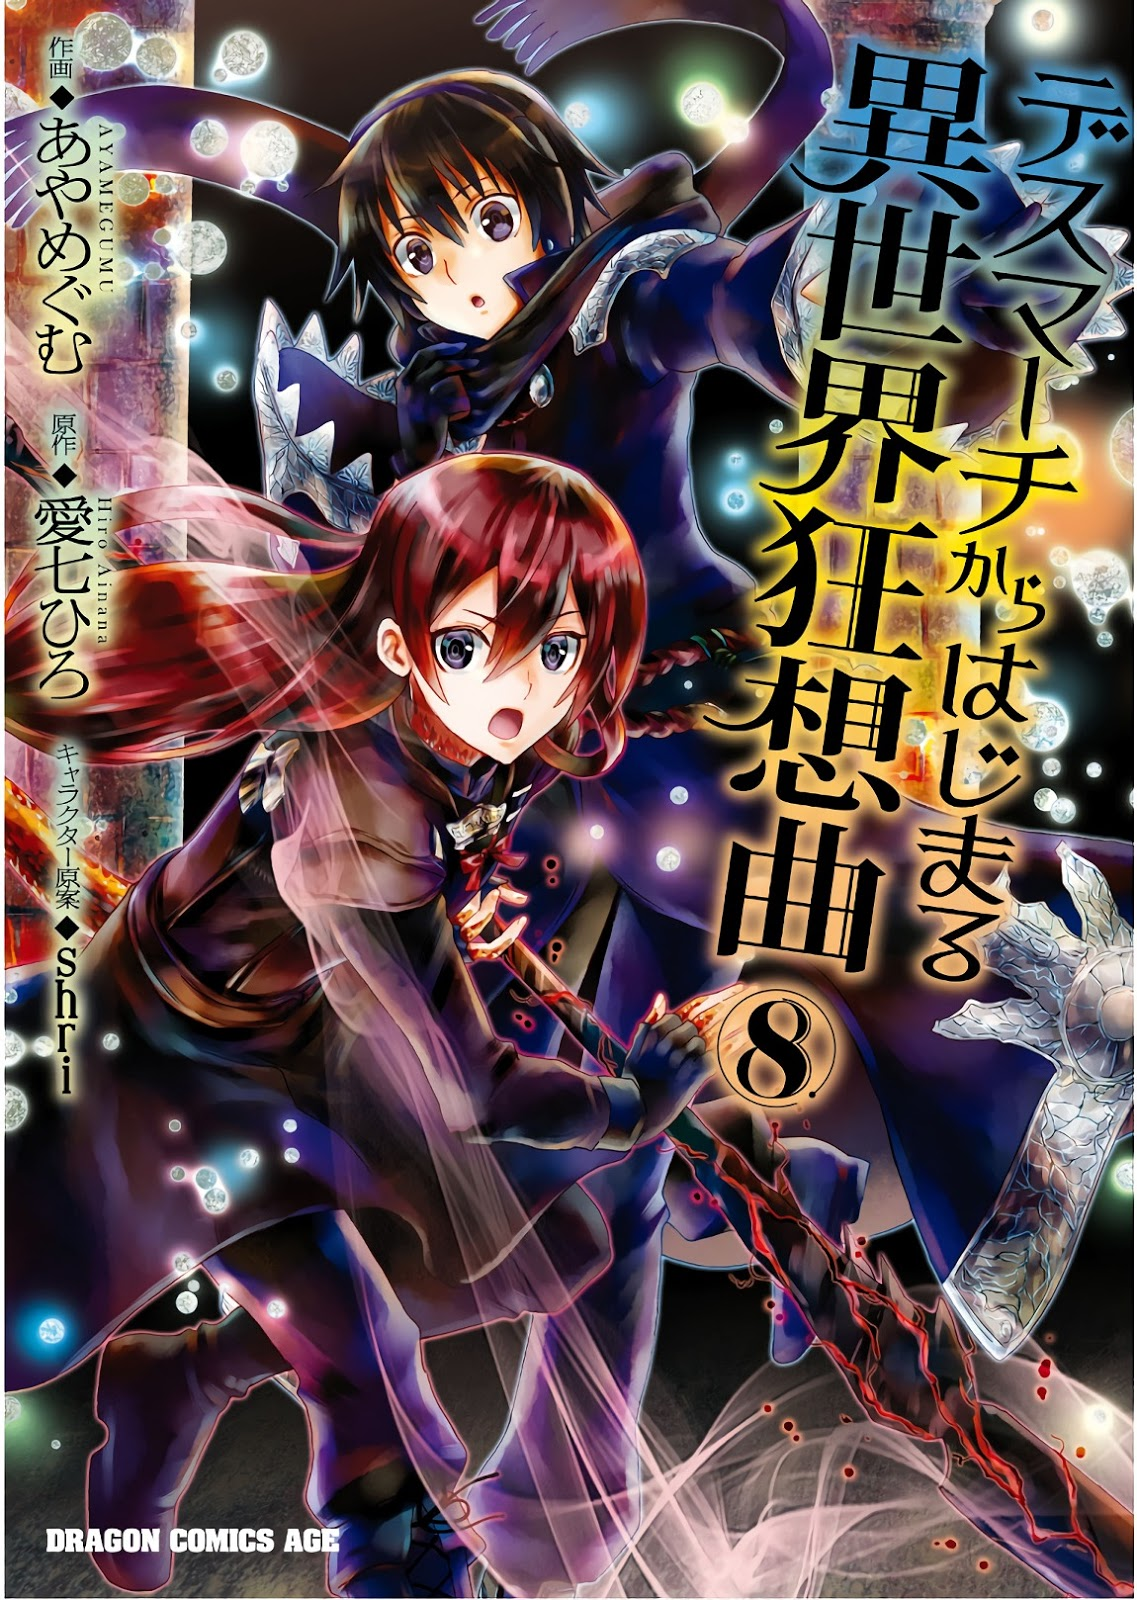 Capa do volume 8 do mangá Death March to the Parallel World Rhapsody